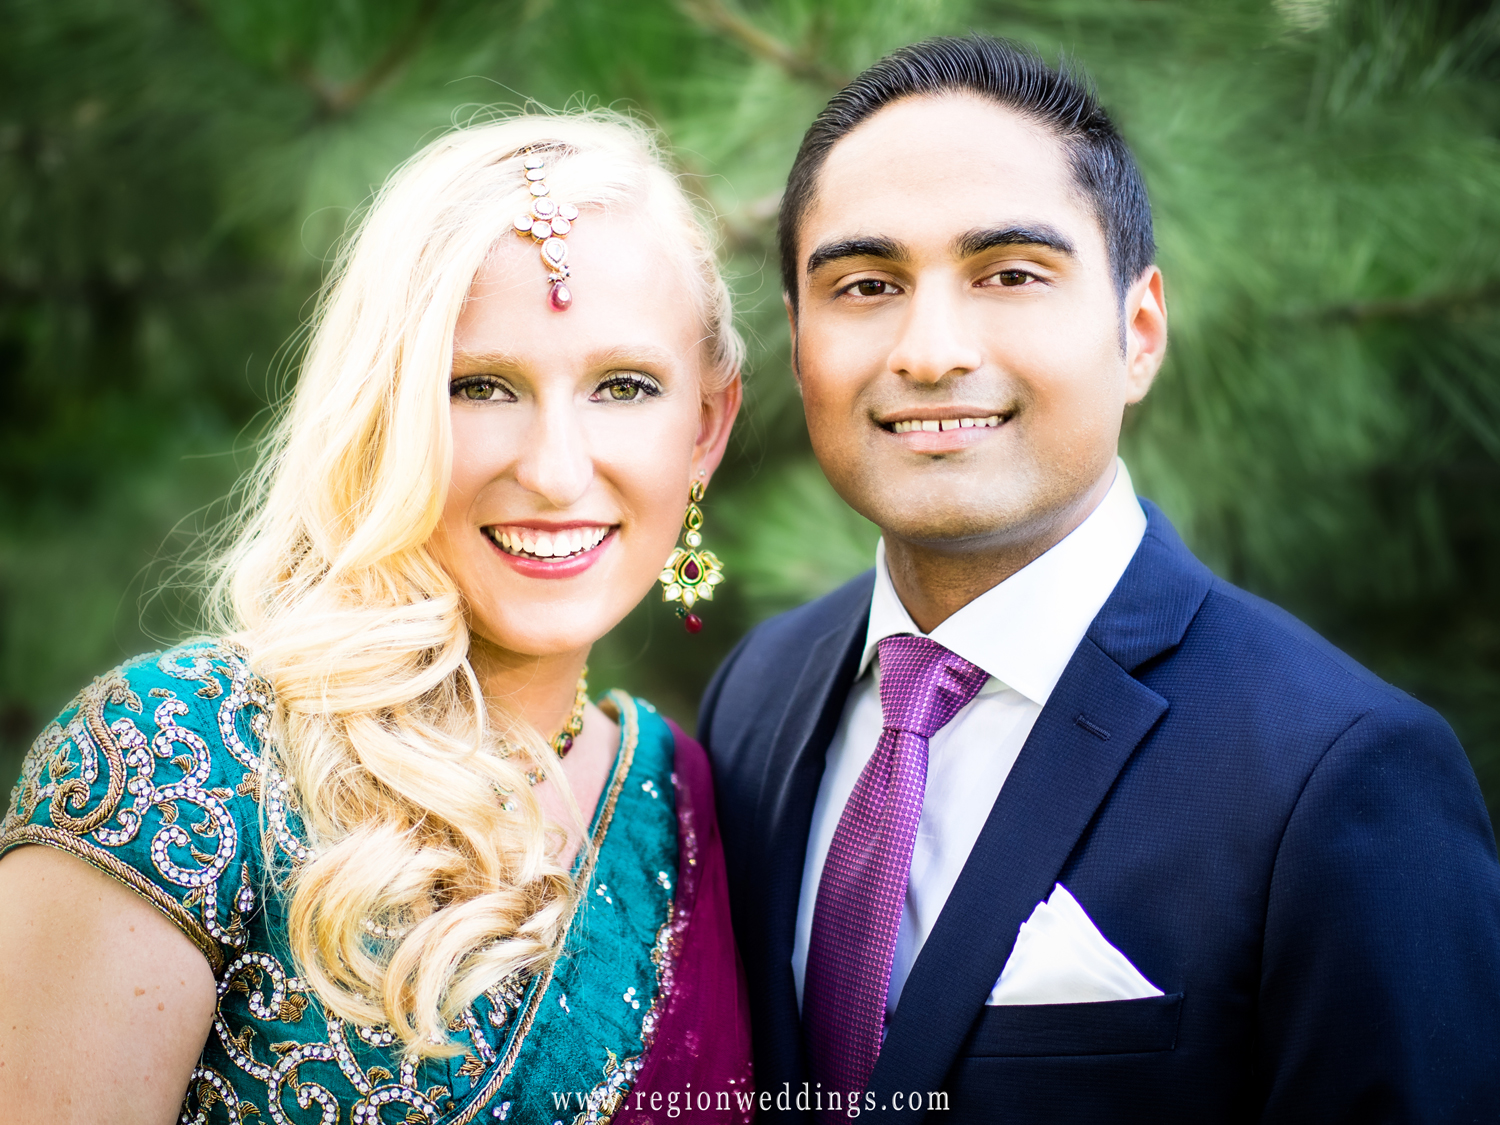 Indian and American bride and groom at their engagement party.